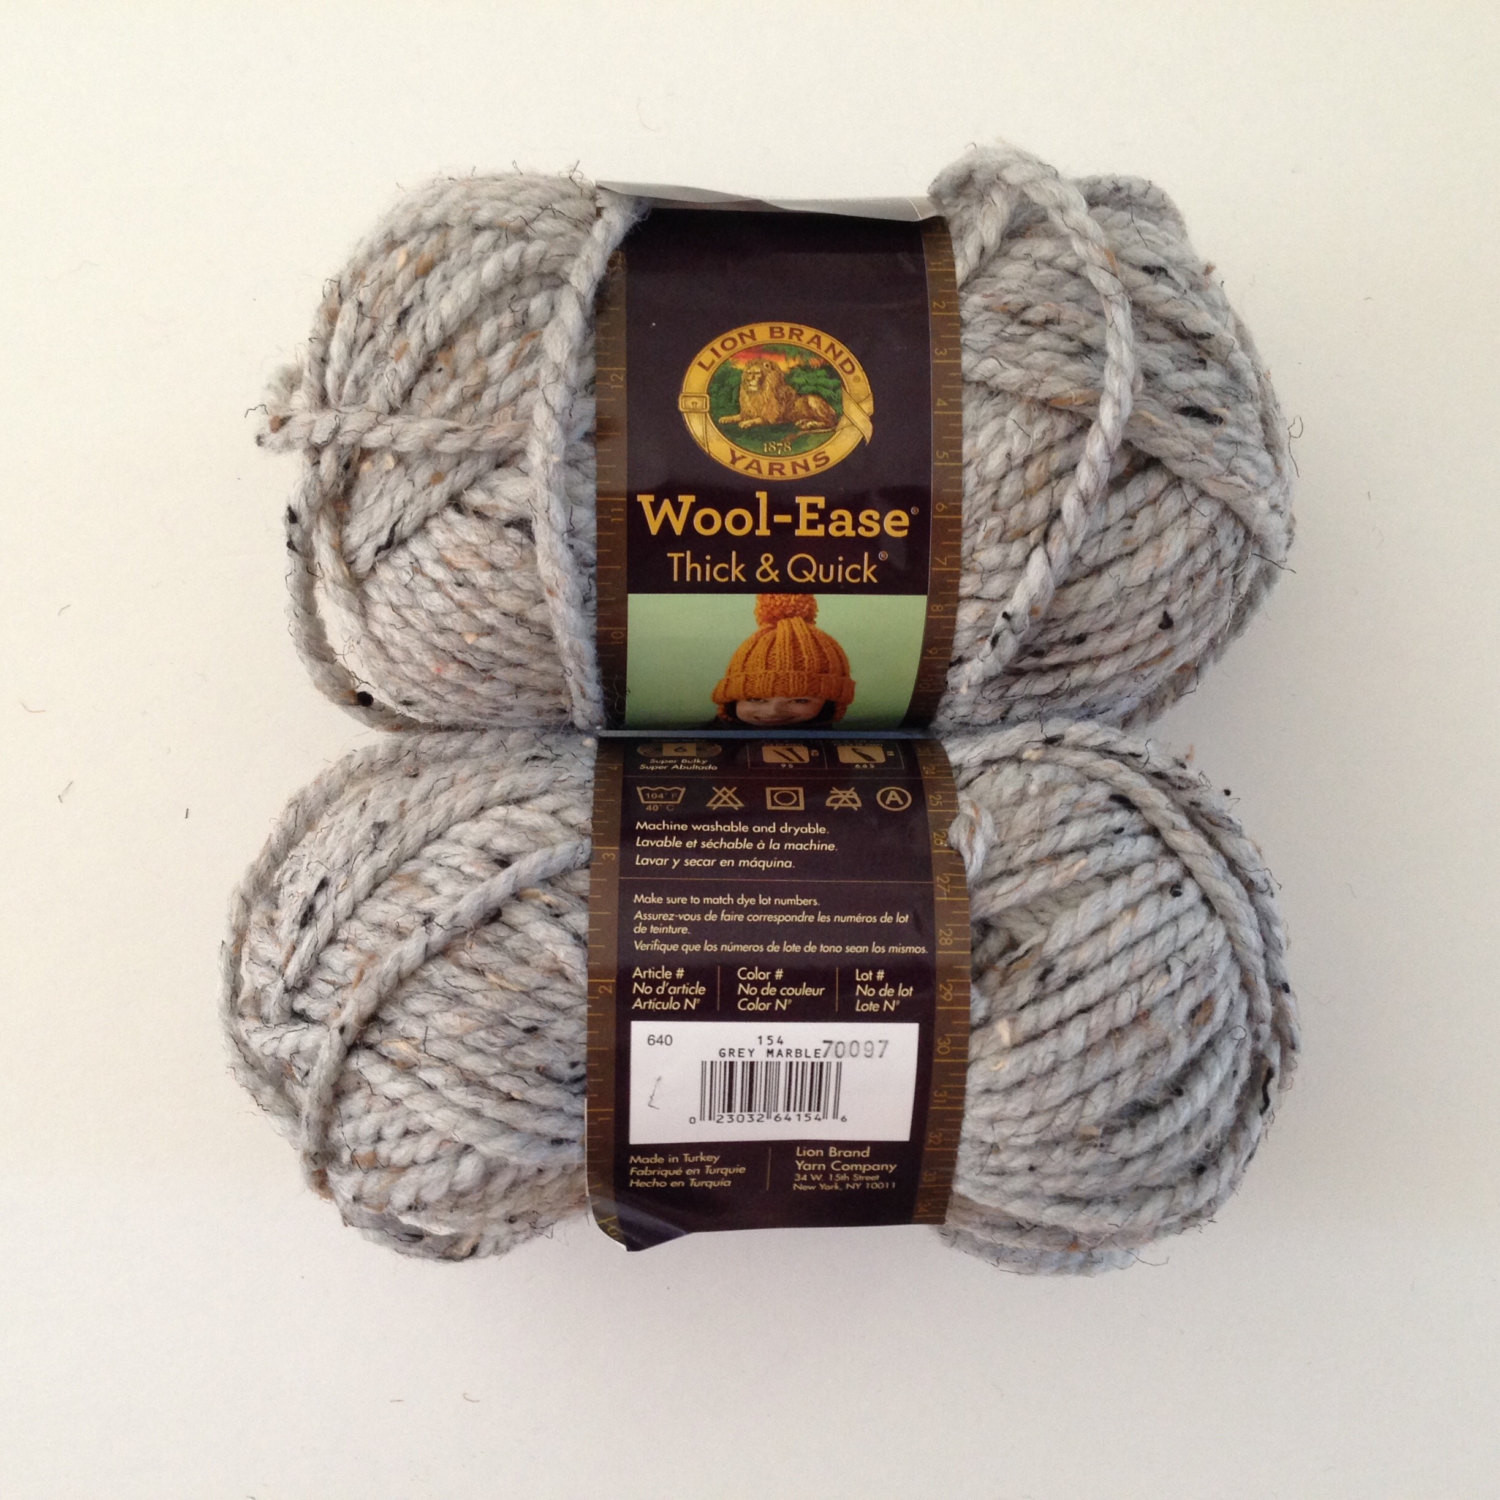 Lion Brand Yarn Thick and Quick Fresh Lion Brand Wool Ease Thick and Quick Yarn Super Bulky Grey Of Luxury 44 Models Lion Brand Yarn Thick and Quick